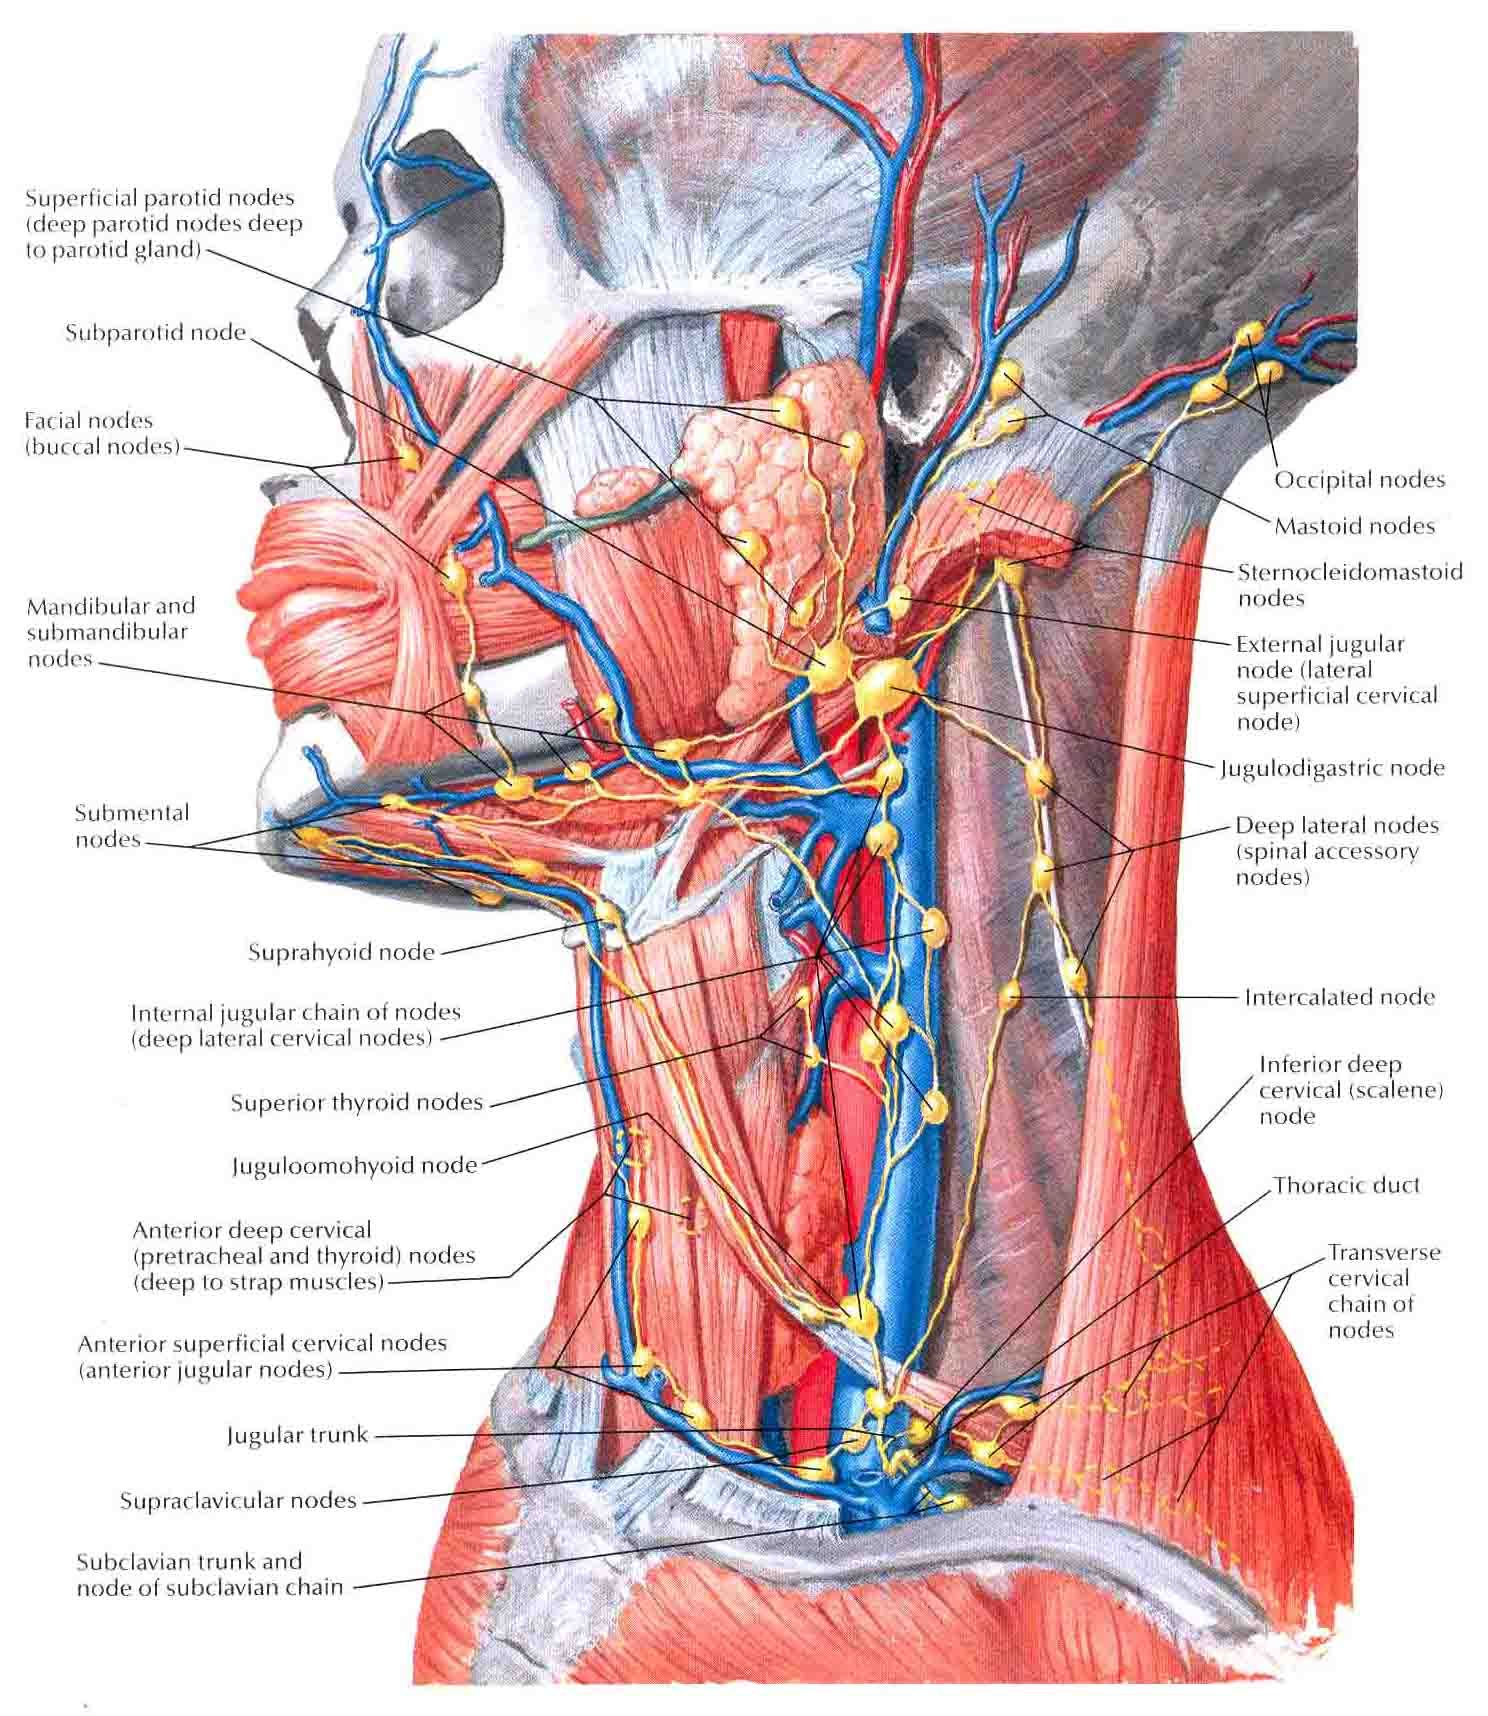 picture of all lymph nodes in head | Lymphatic System | Pinterest ...